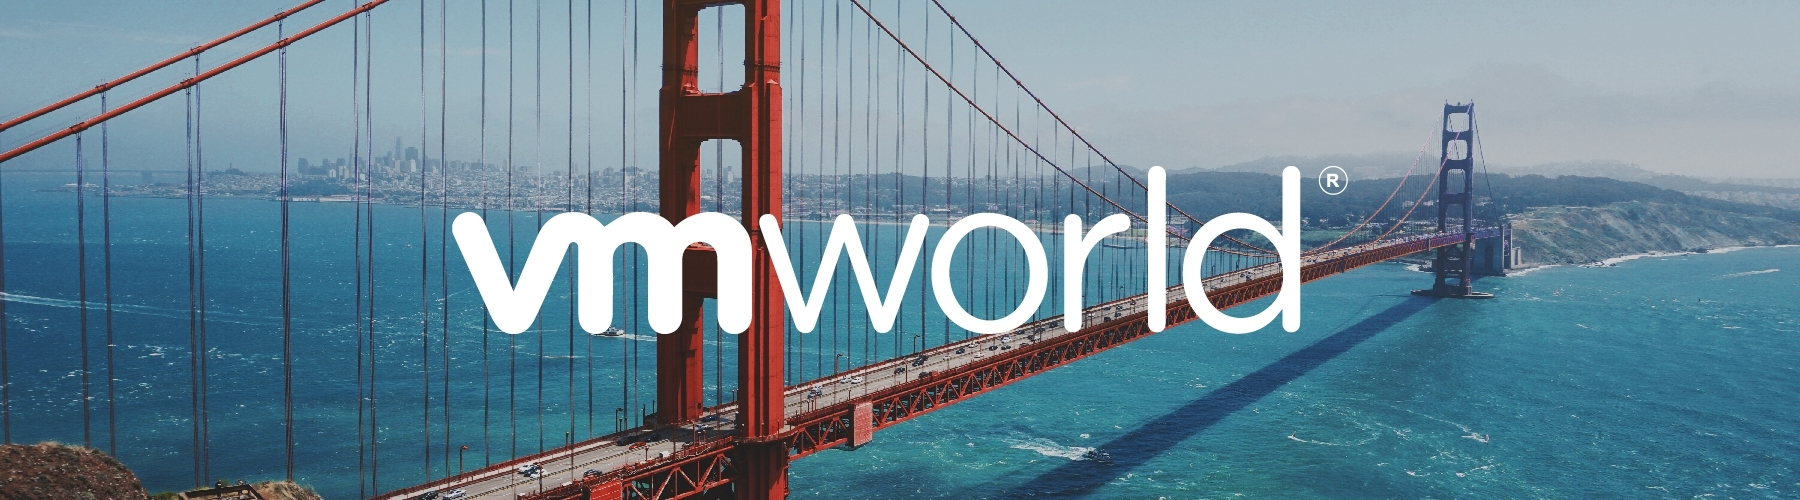 On your mark, Get ready, VMworld 2019